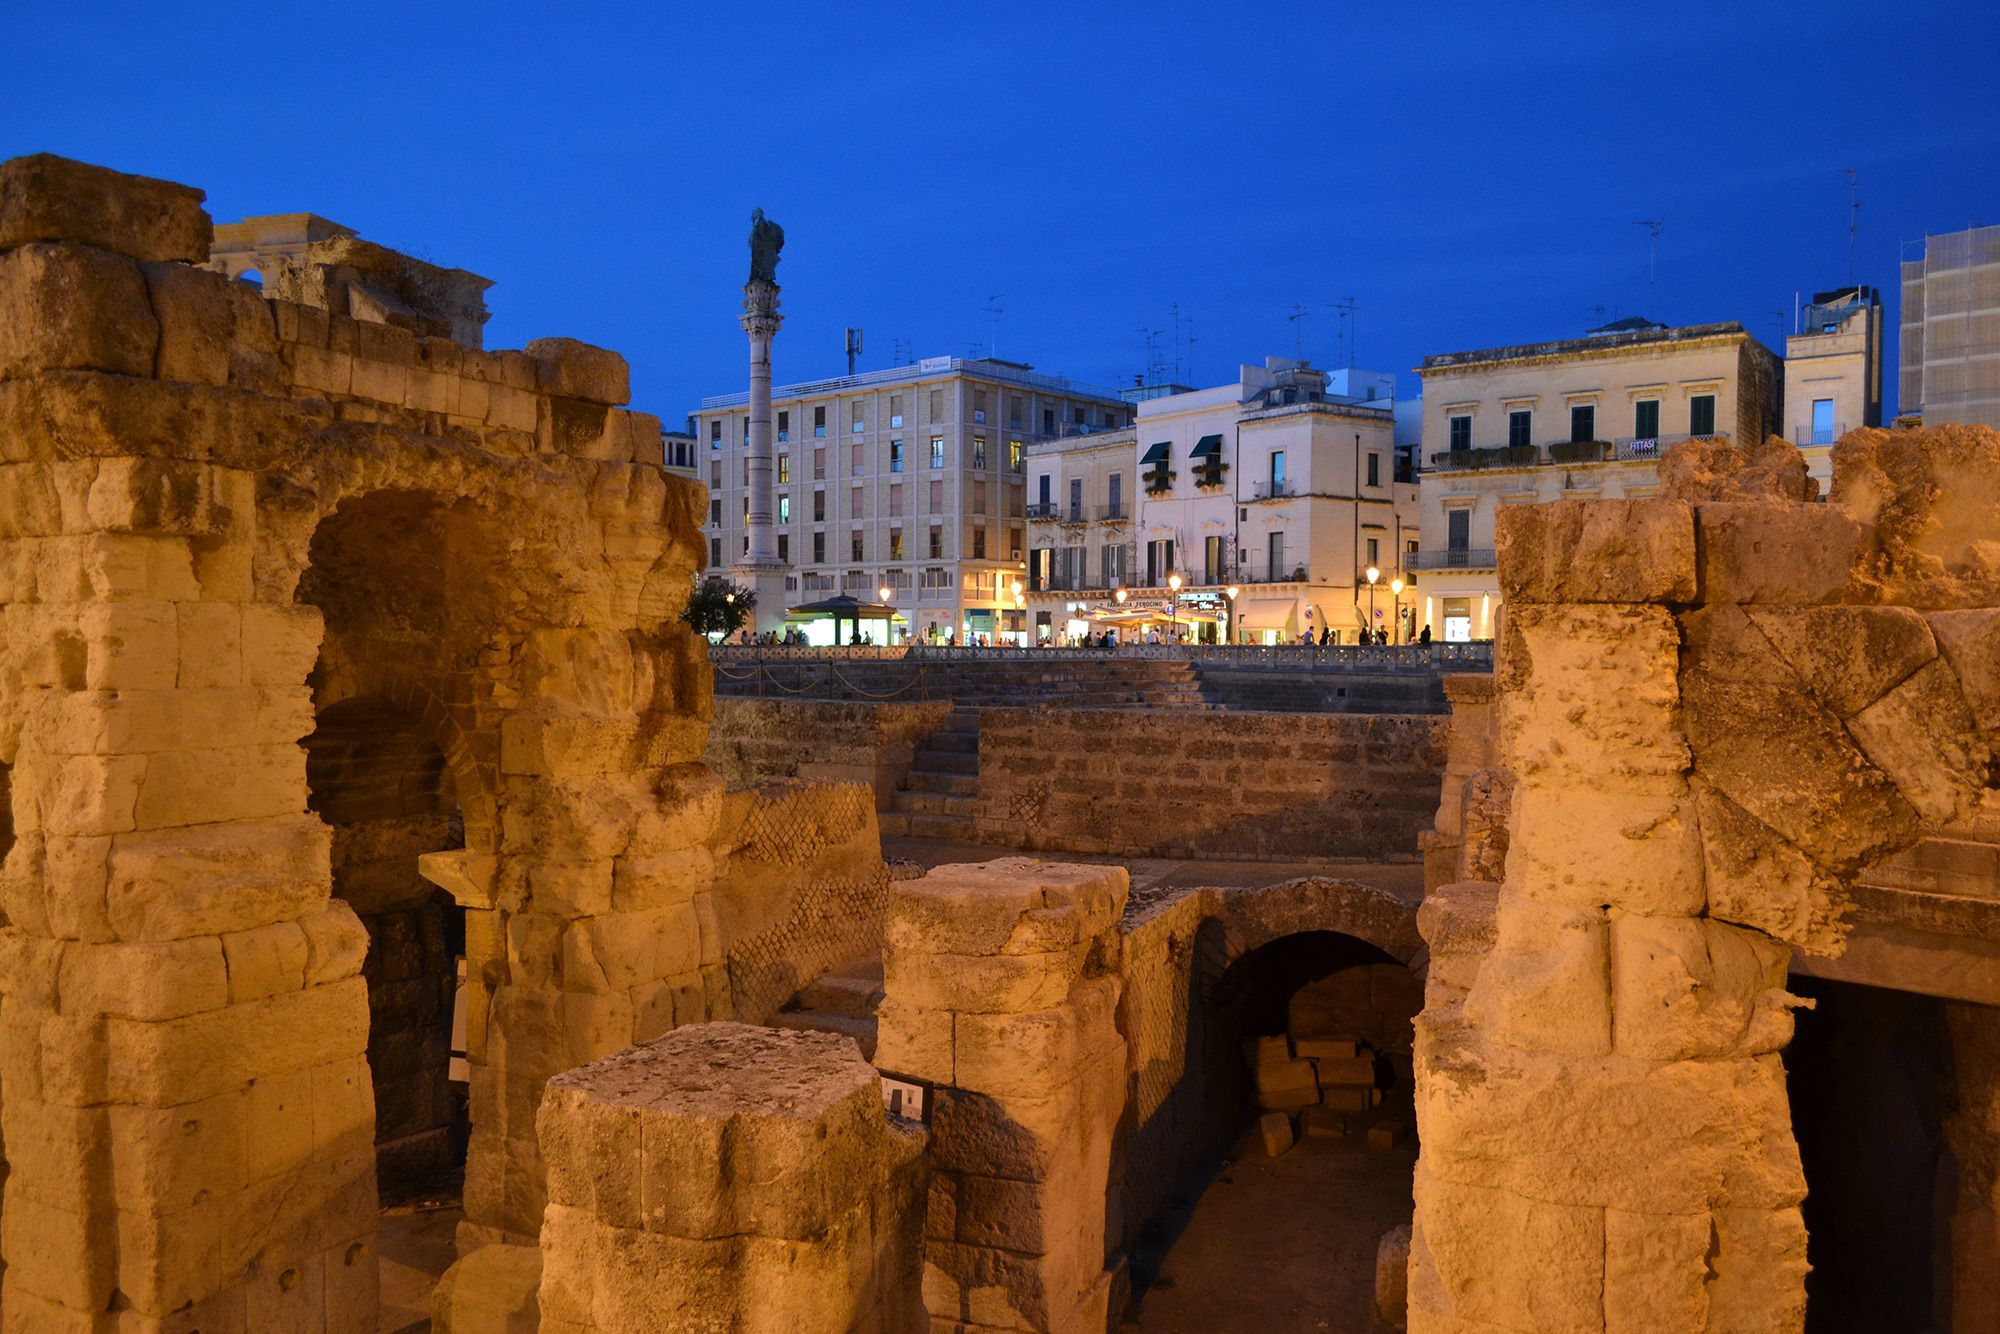 Top 10 things to do in Lecce according to the local experts